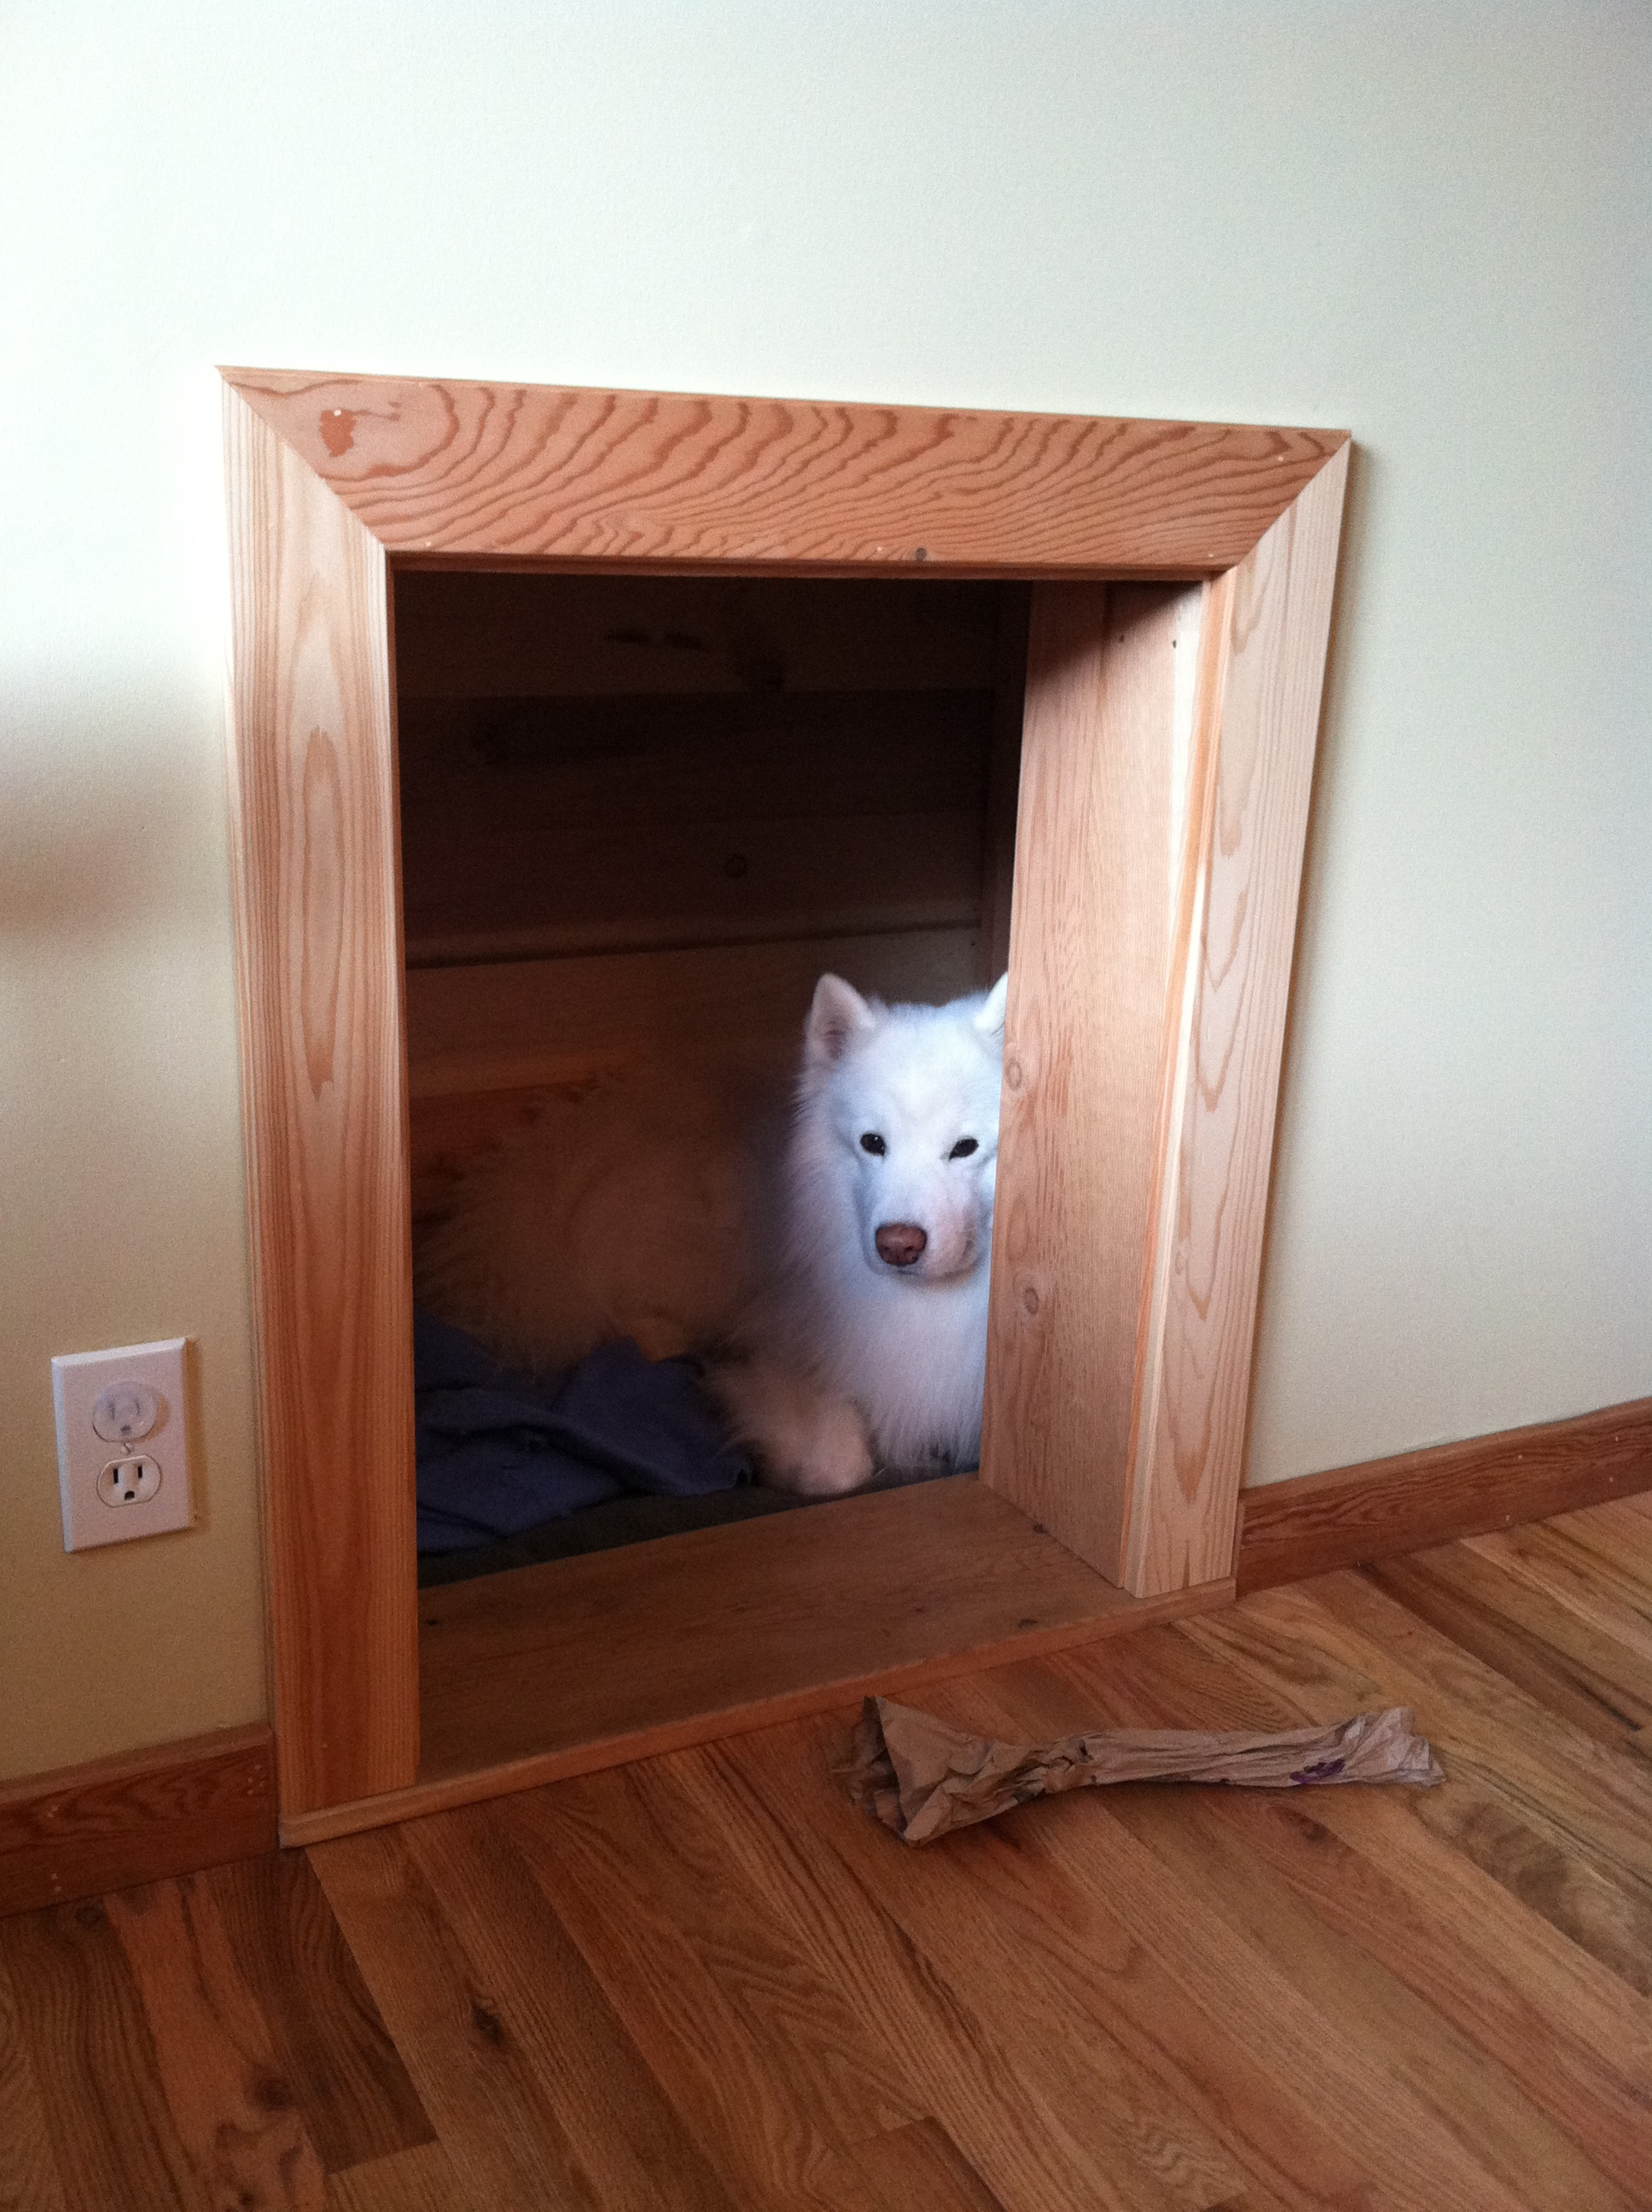 Homedesignfordogs designing with dogs in mind page 2 for Home kennel design